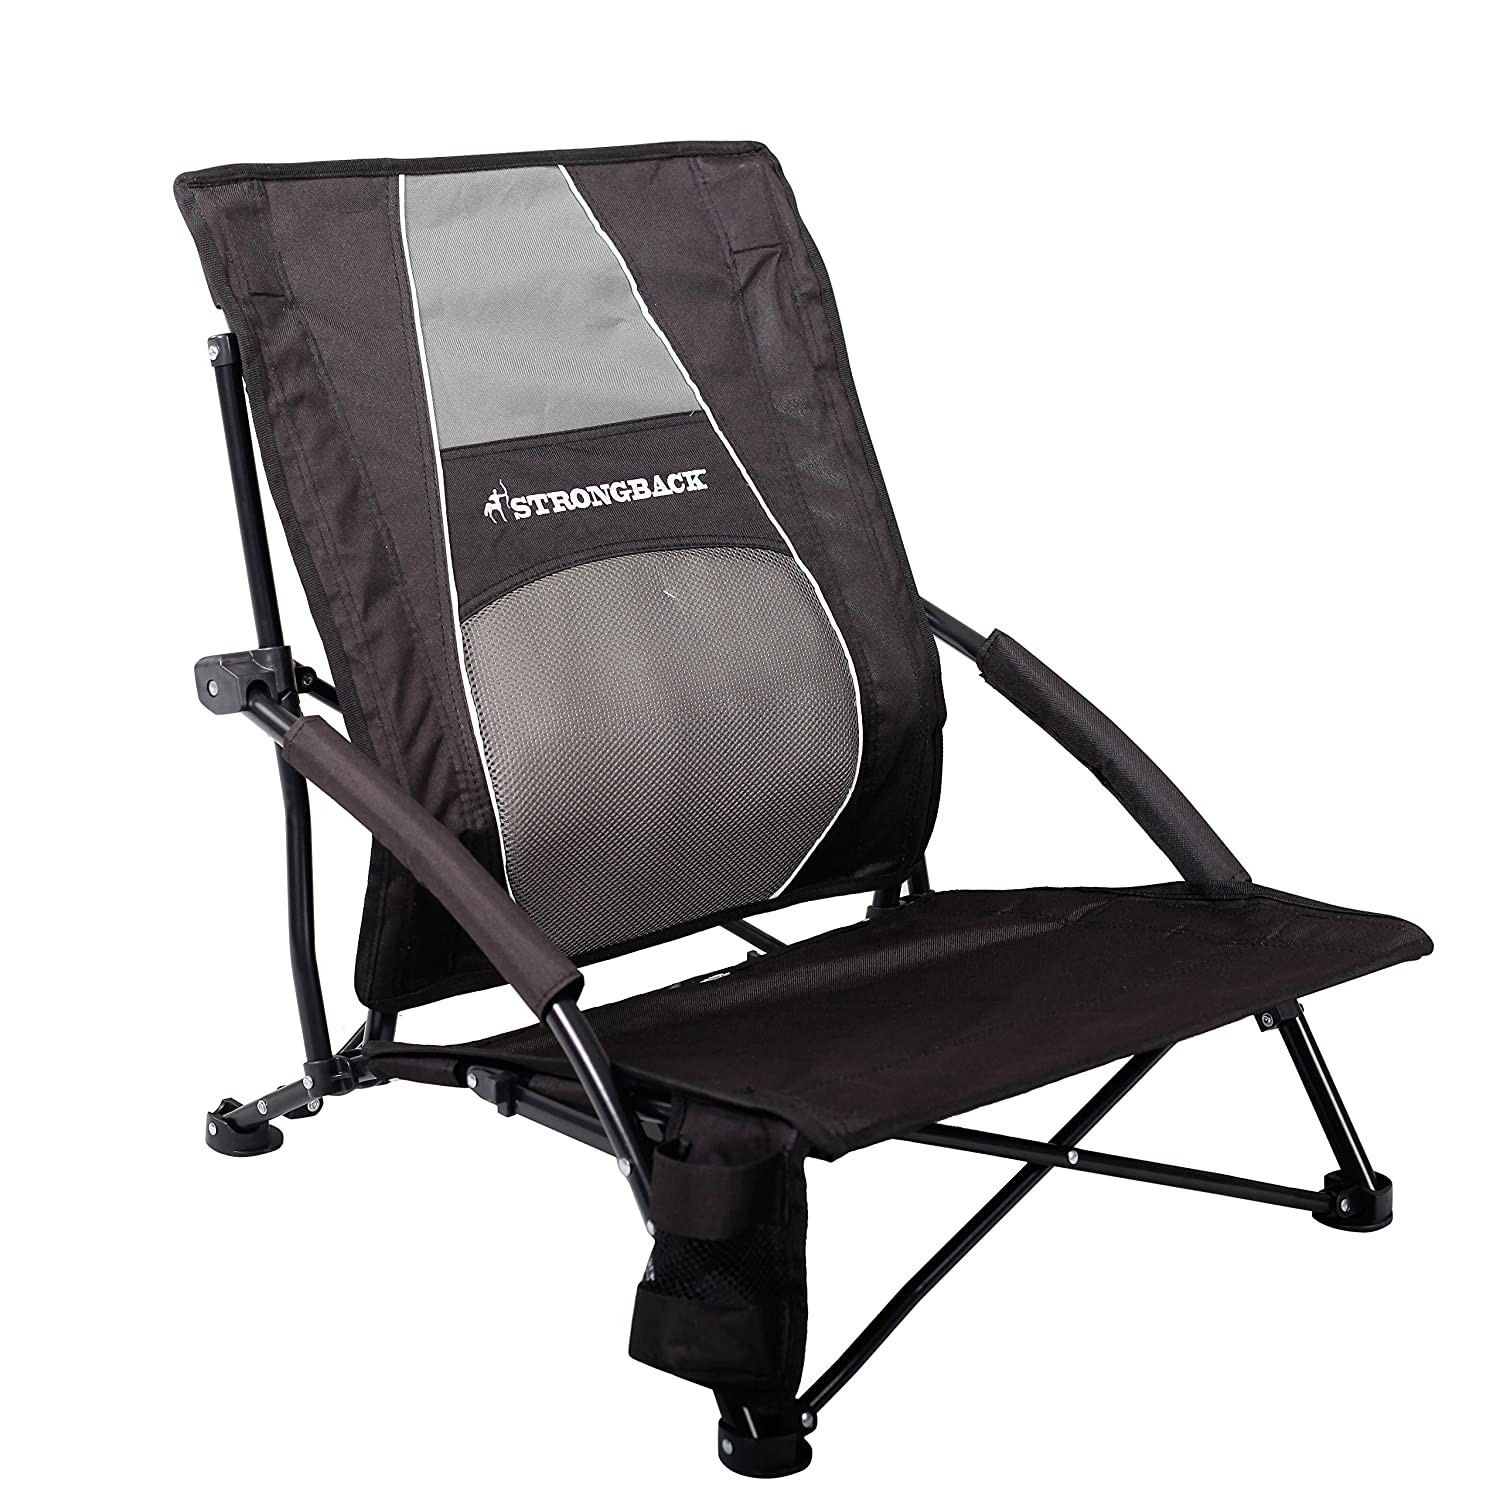 Amazon Folding Chairs Sports & Outdoors